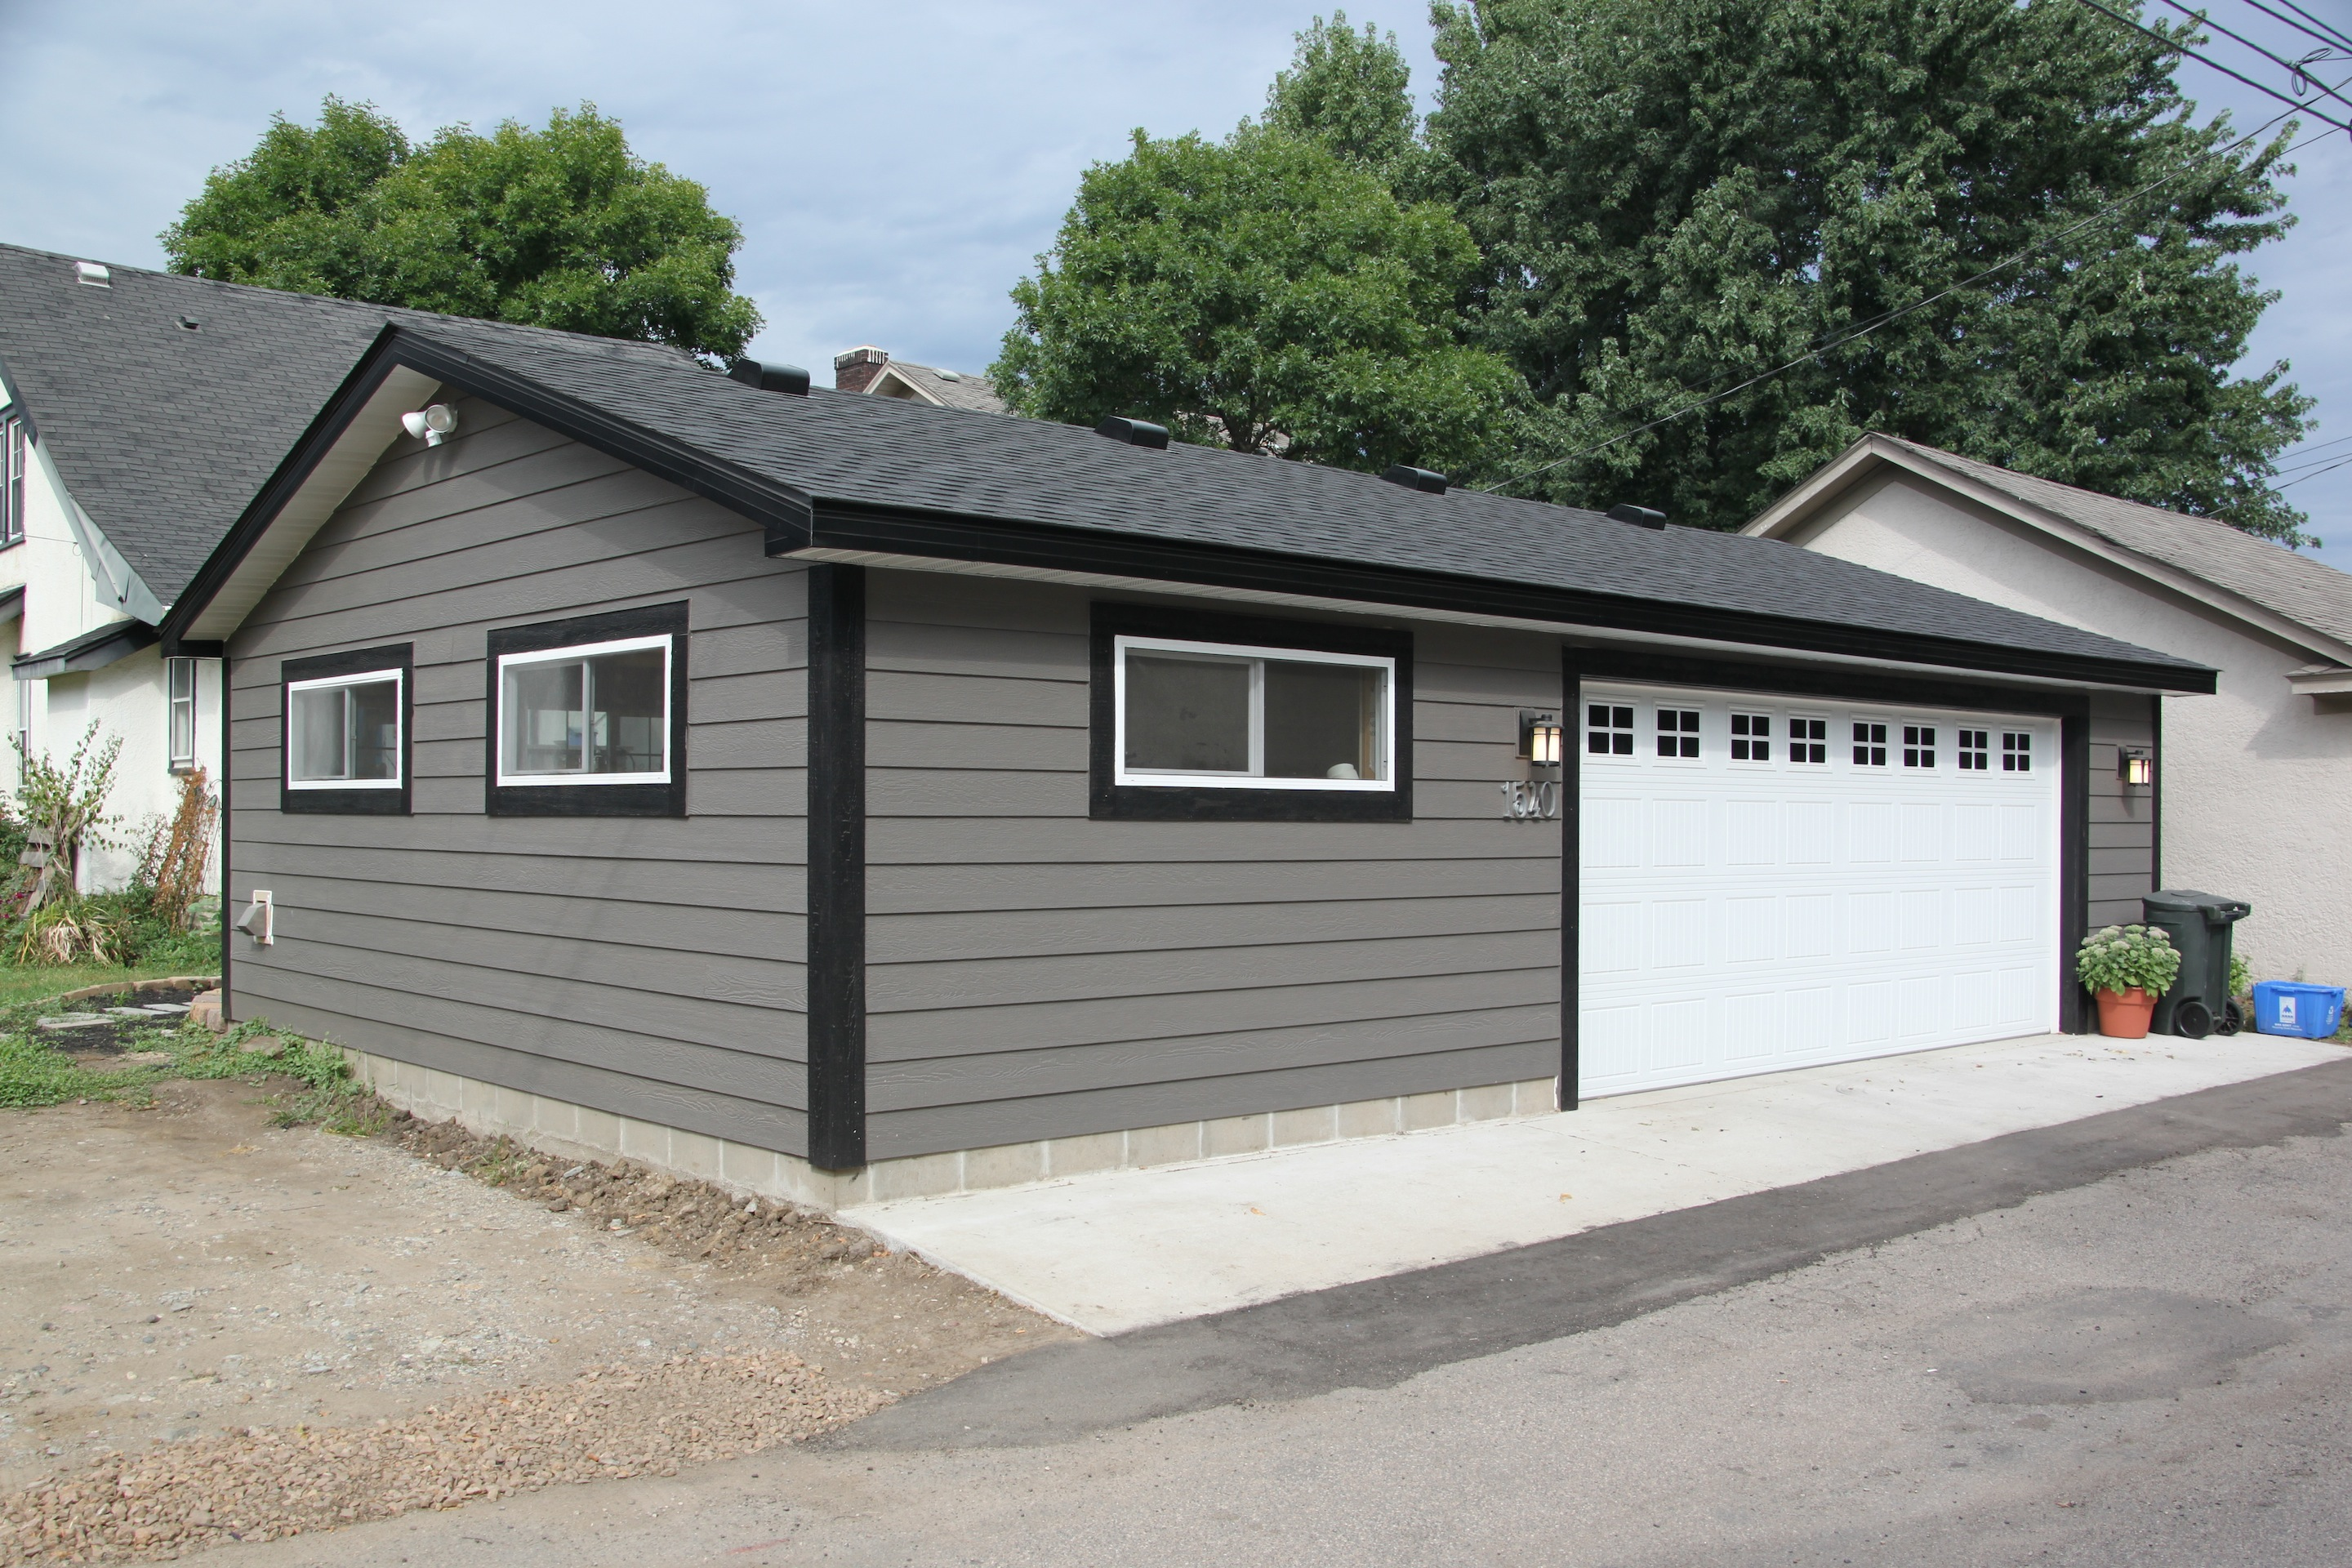 Detached home office Modern Propertycasualty360 St Paul Garage Home Office